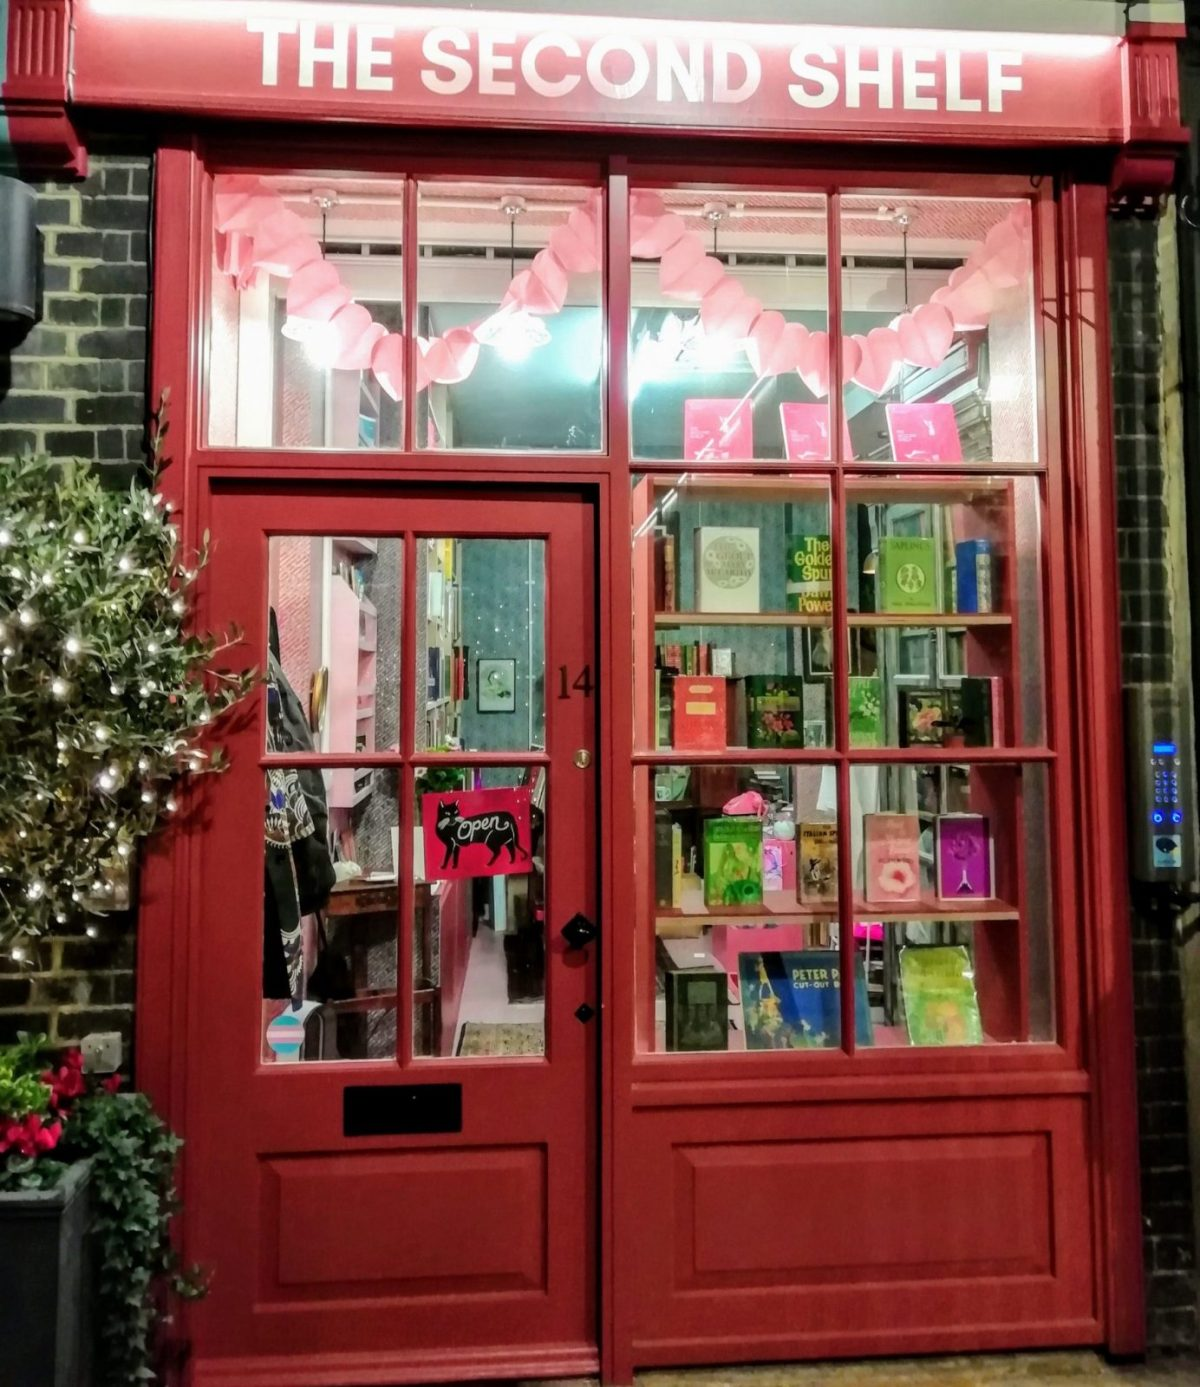 Best Cheap & Secondhand Bookshops in London 3